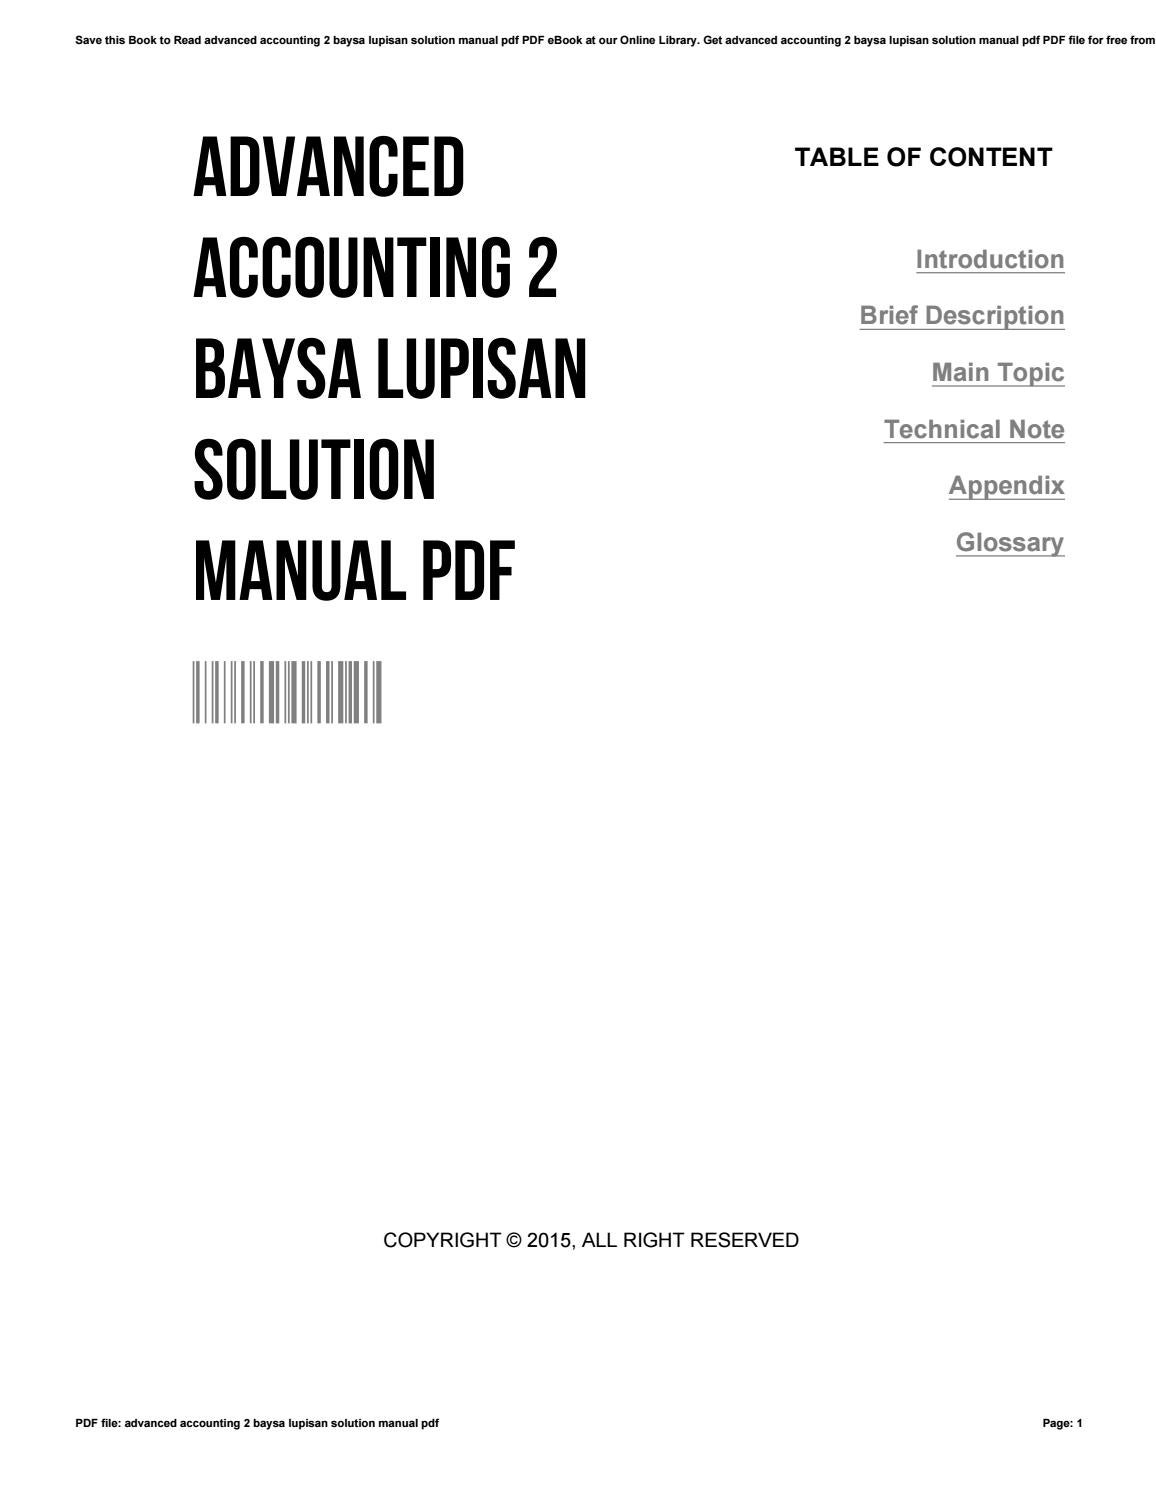 Advanced accounting 2 baysa lupisan solution manual pdf by